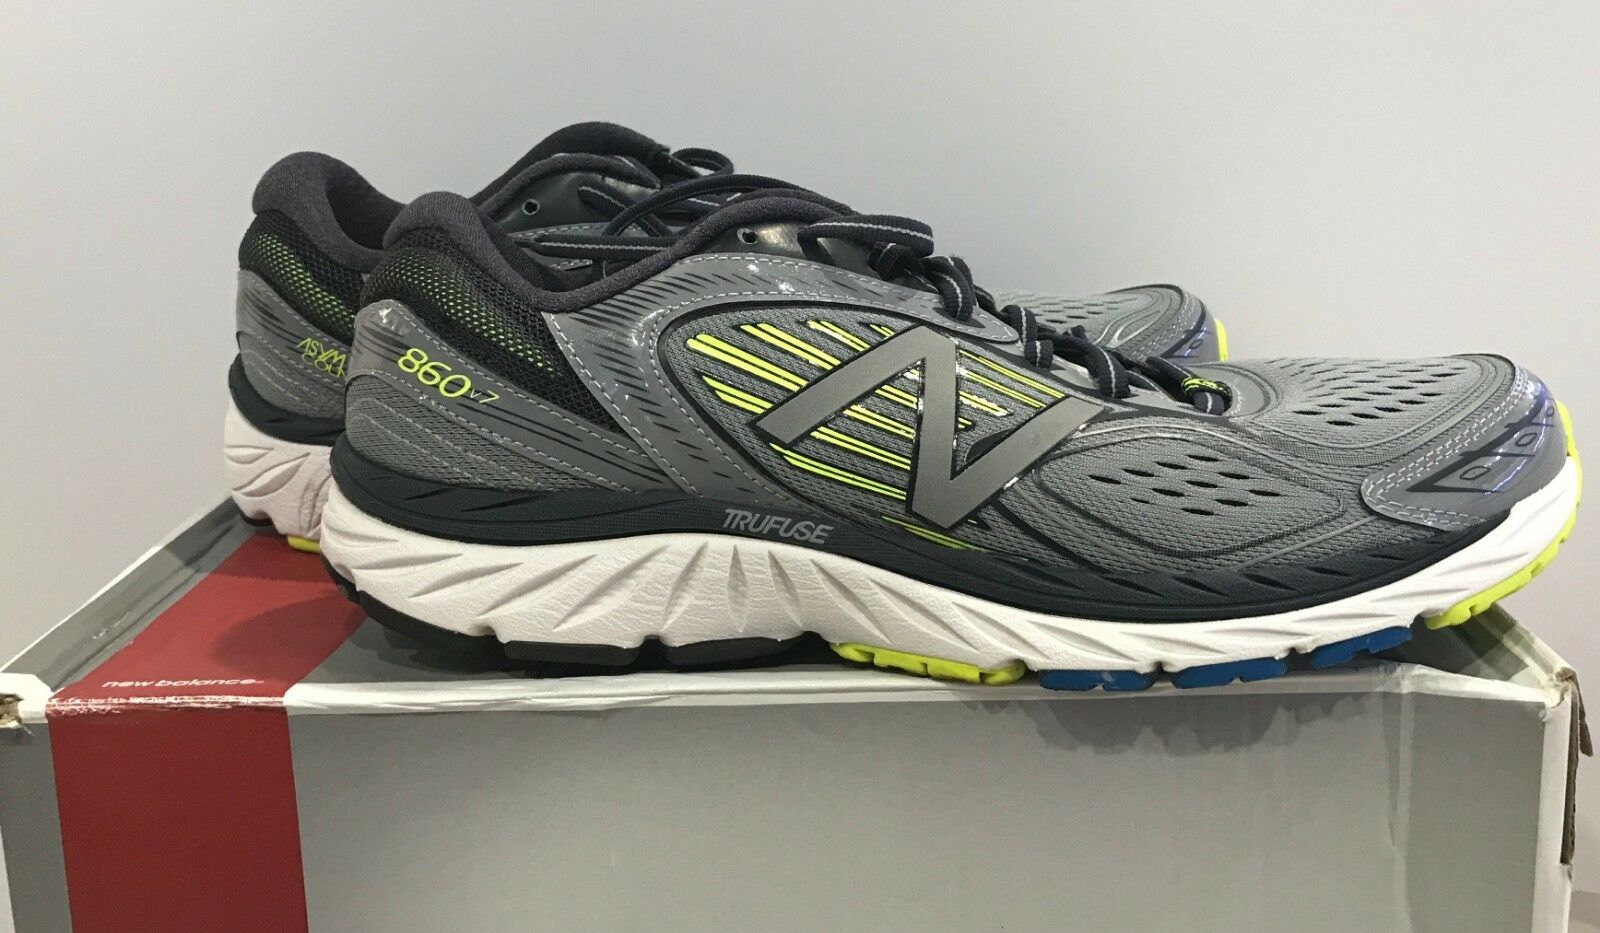 New Balance hommes 860v7 Running Chaussures , Gris /Yellow ,10 D US, M860GY7 OTHER